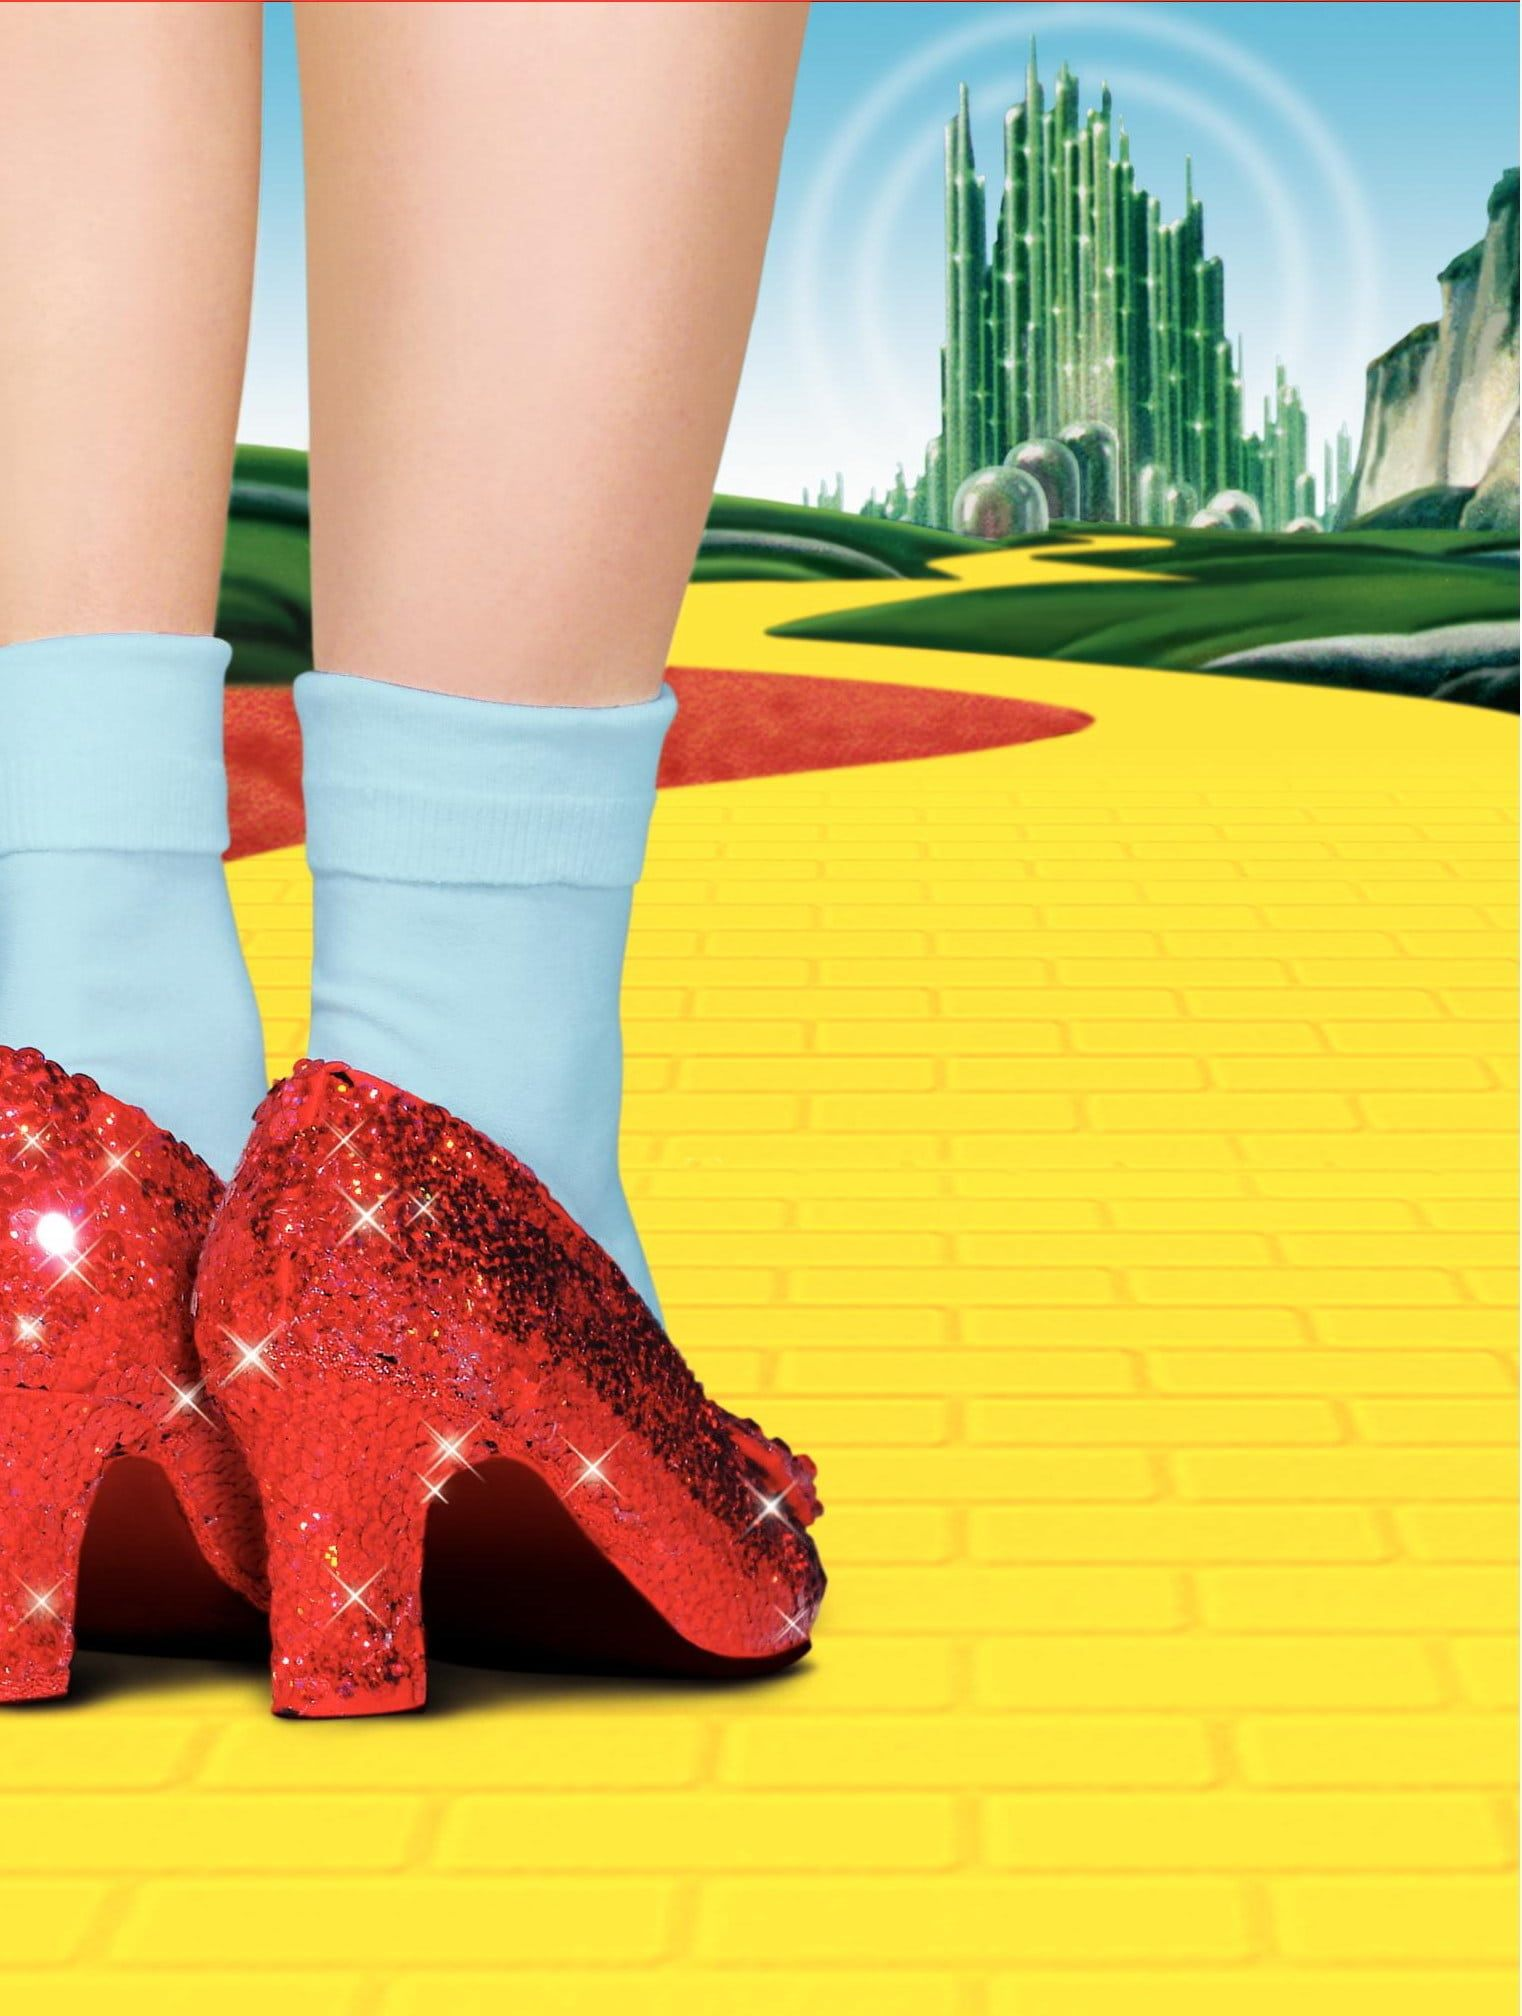 Download the wizard of oz 1939 fullmovie